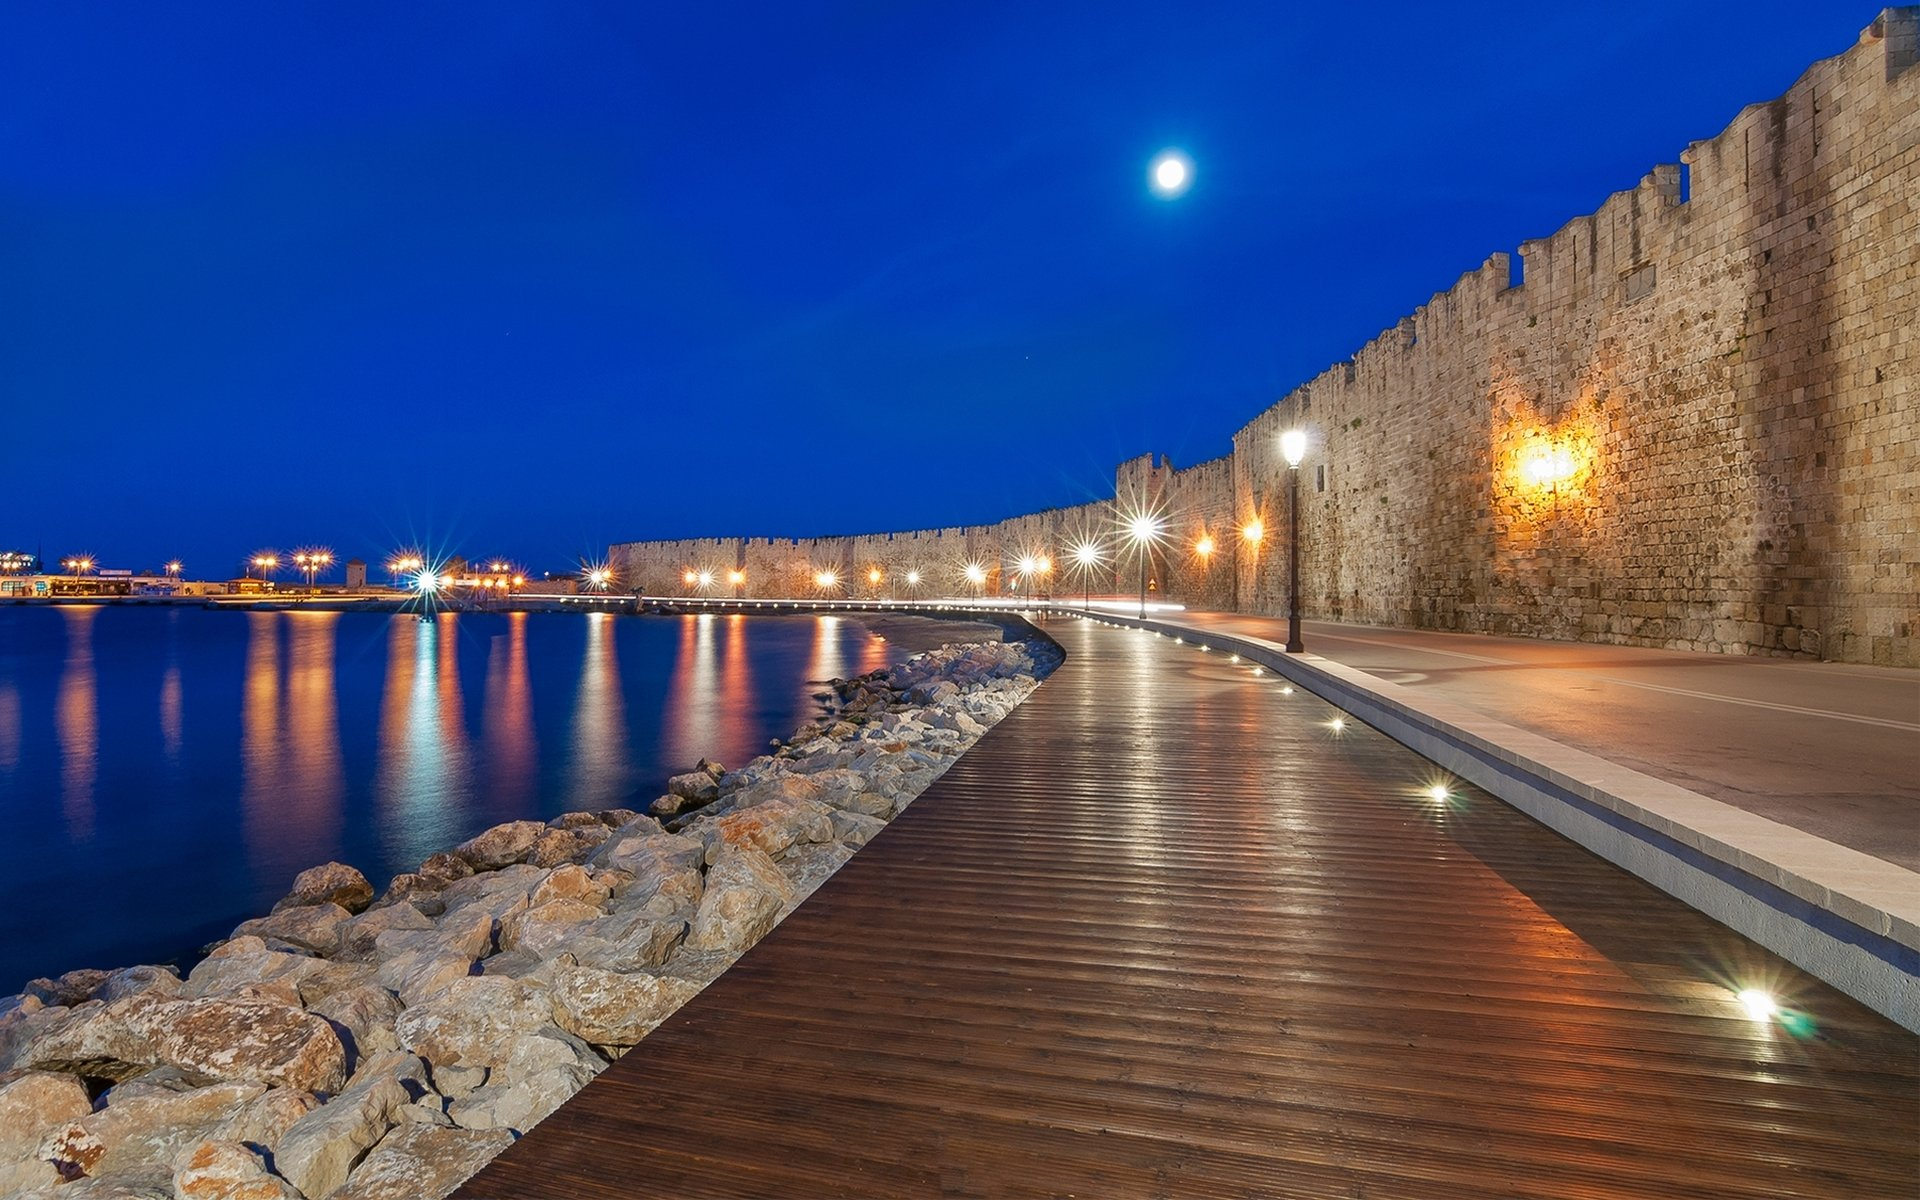 pedestrian street in the city of Rhodes